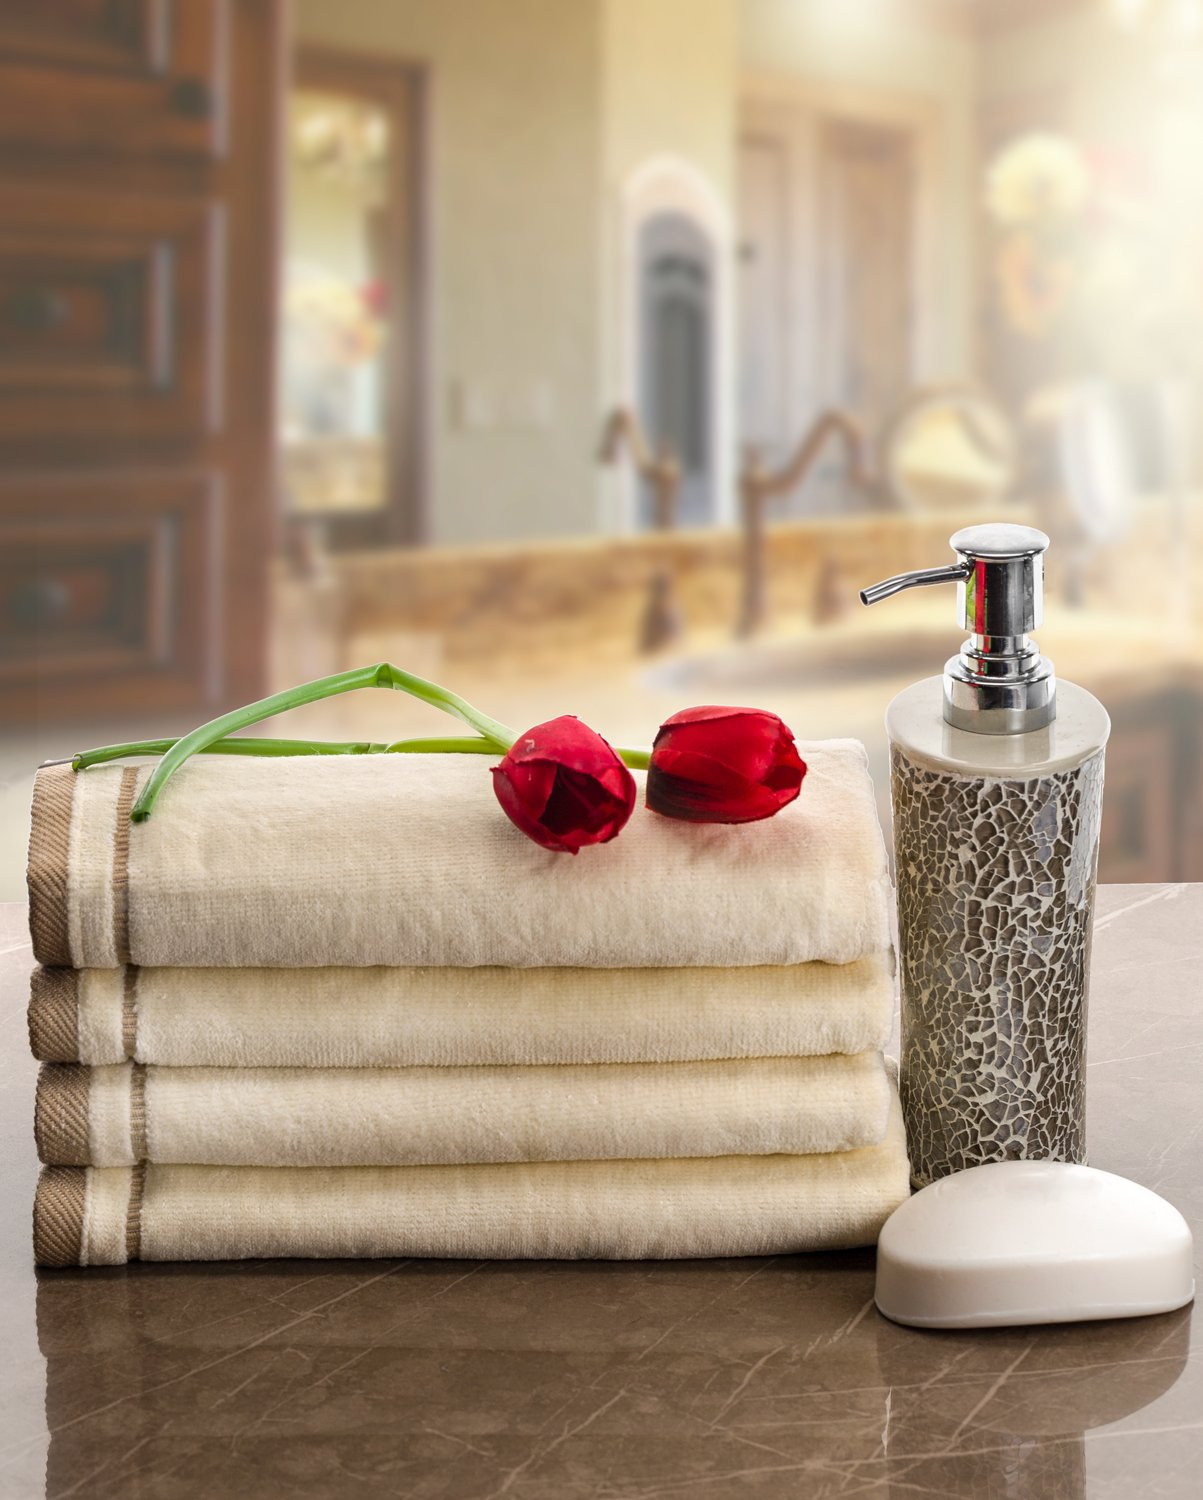 Creative Scents - Luxury Fingertip Towels For Embroidery